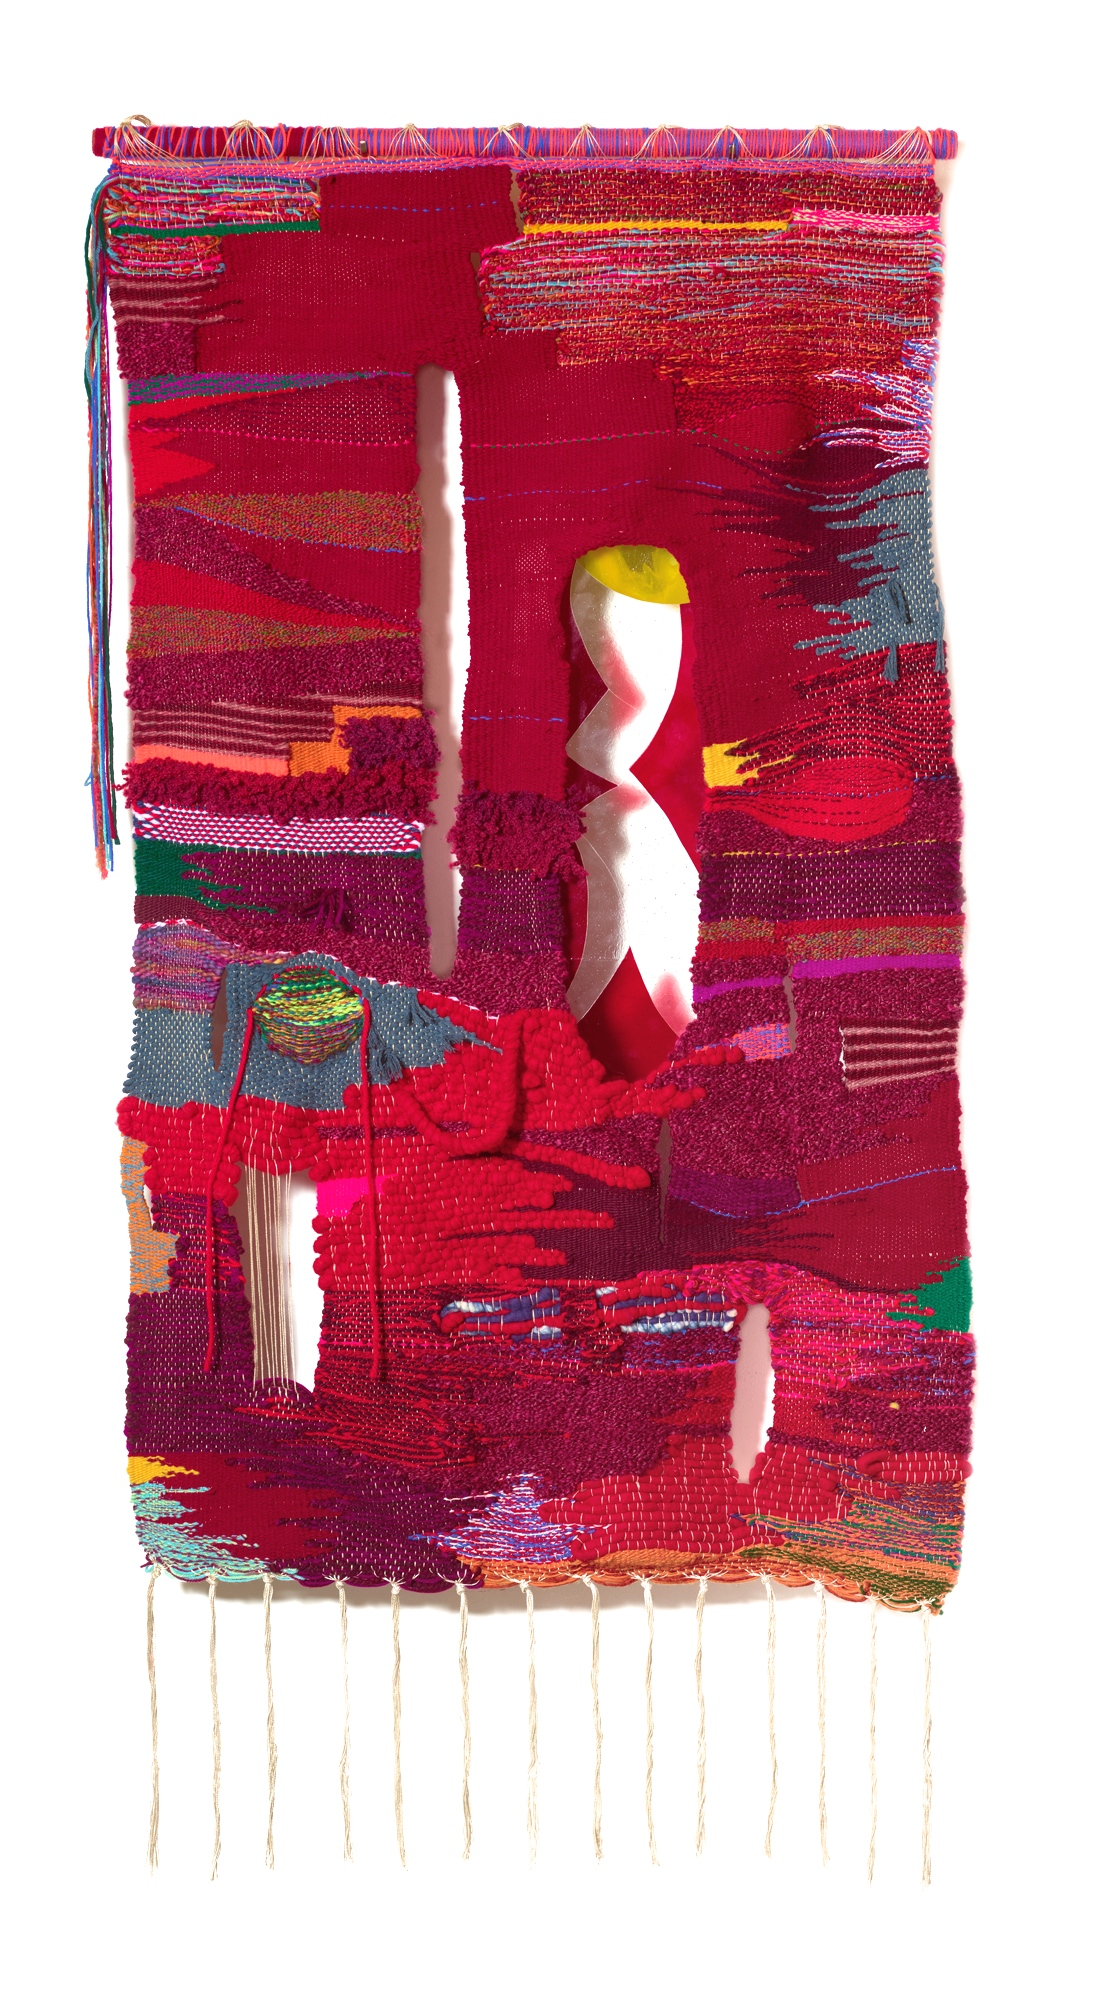 Fermented, 2019, 40 x 76 in, wool, cotton, acrylic, metallic fibers, fused glass